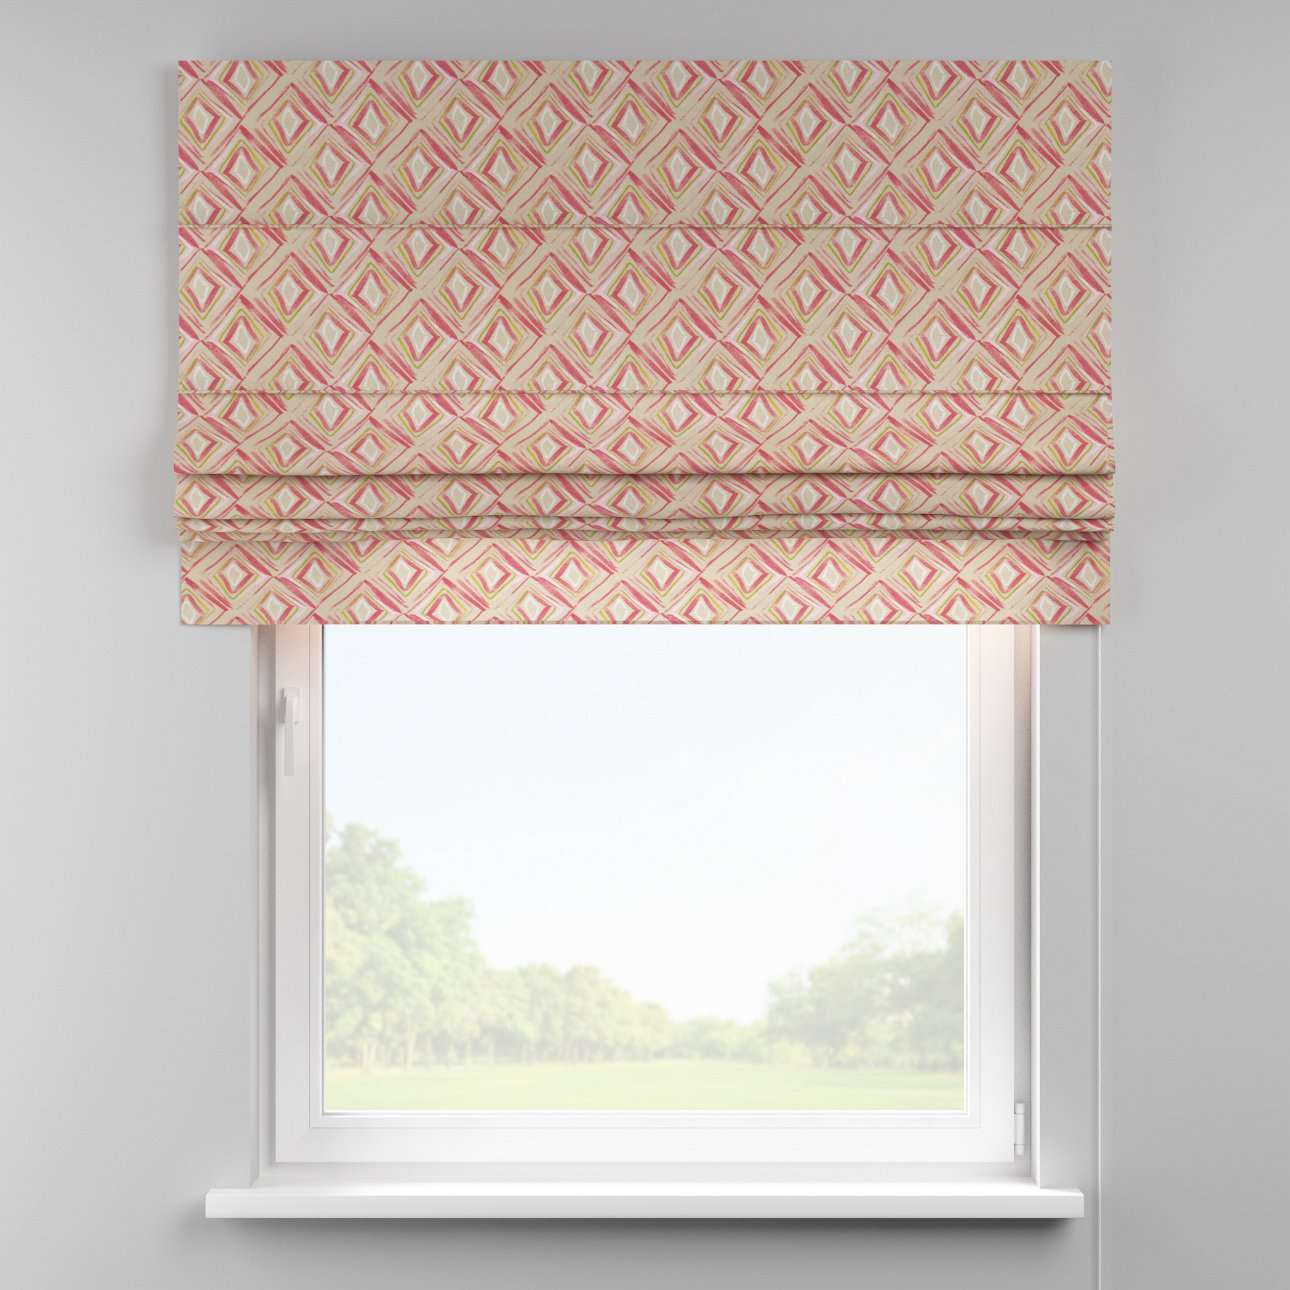 Padva roman blind  80 × 170 cm (31.5 × 67 inch) in collection Londres, fabric: 140-45